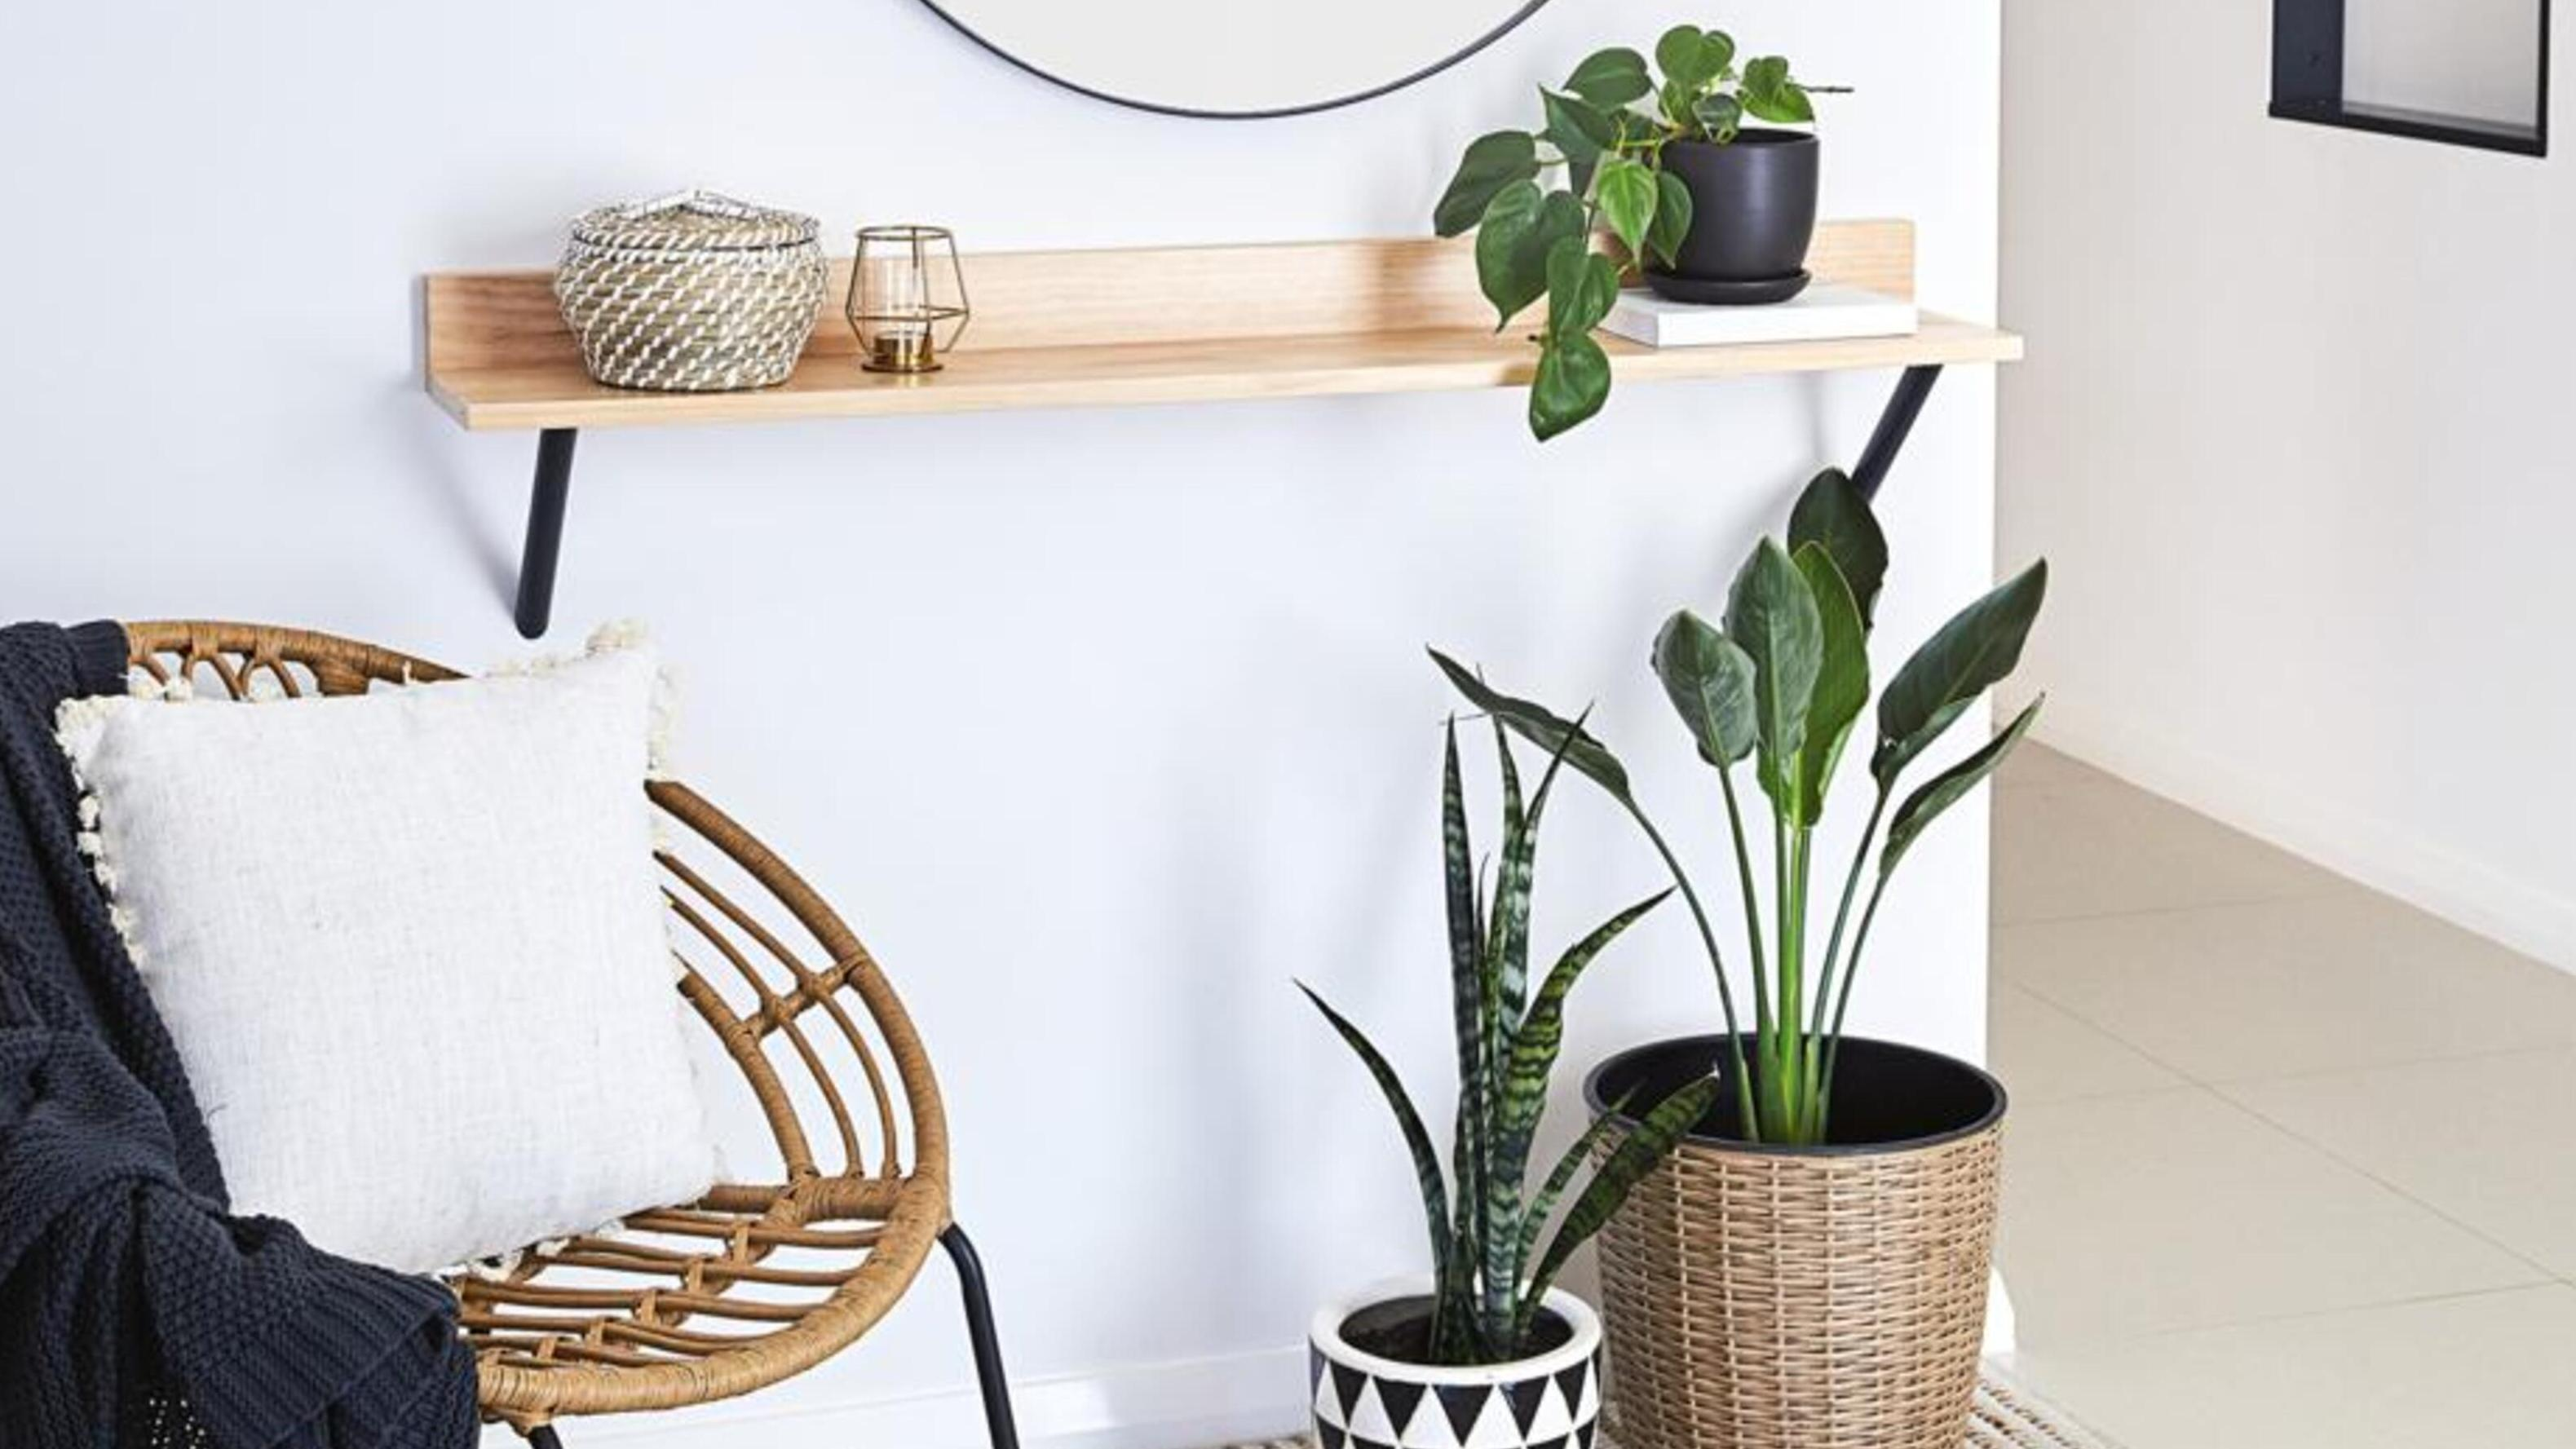 Wall with timber shelf and plants on it, chair with cushion.